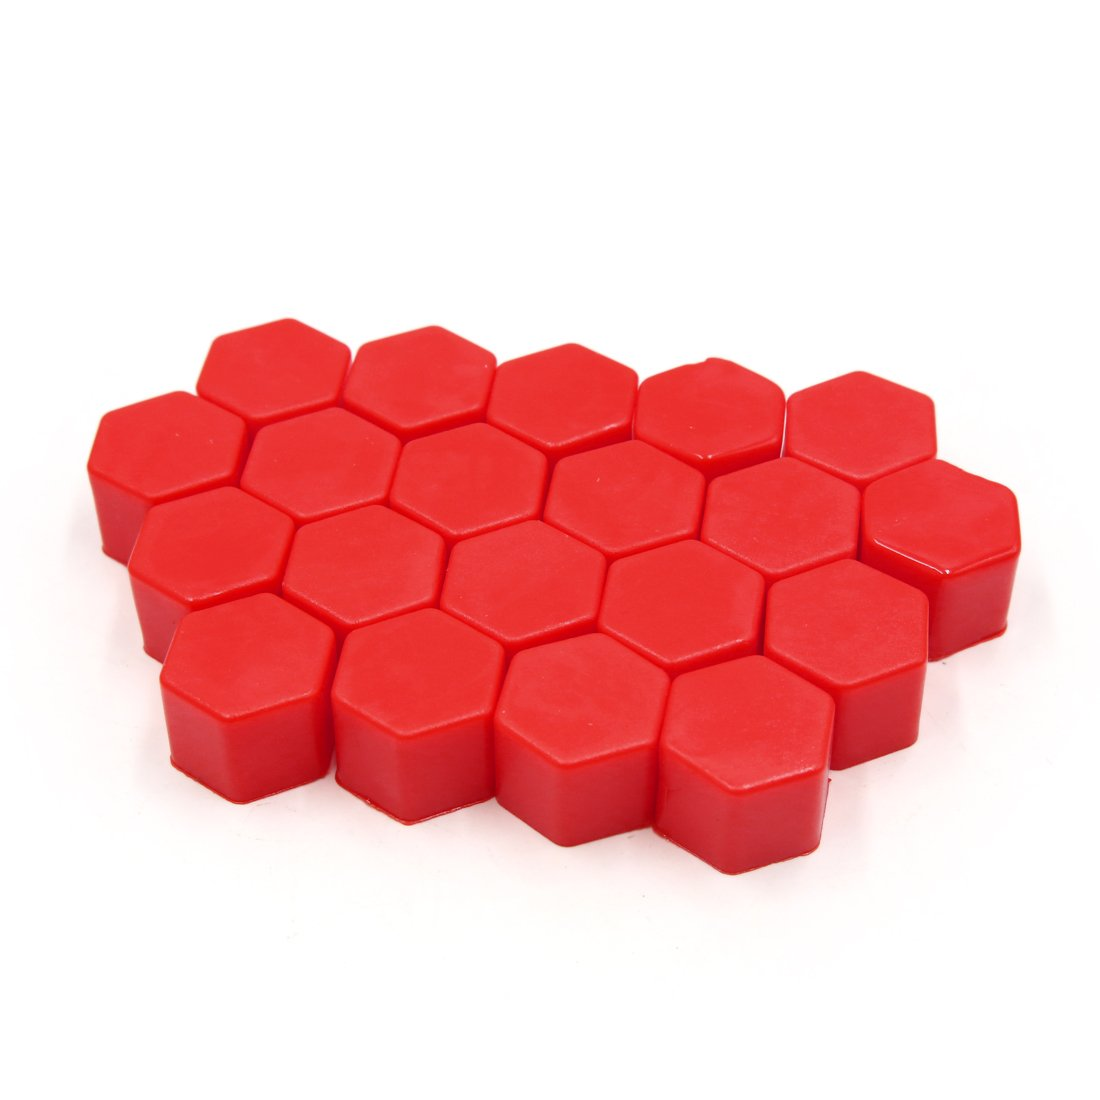 uxcell 20Pcs 17mm Red Silicone Car Wheel Lug Nut Bolt Hub Covers Screw Dust Caps US-SA-AJD-314979